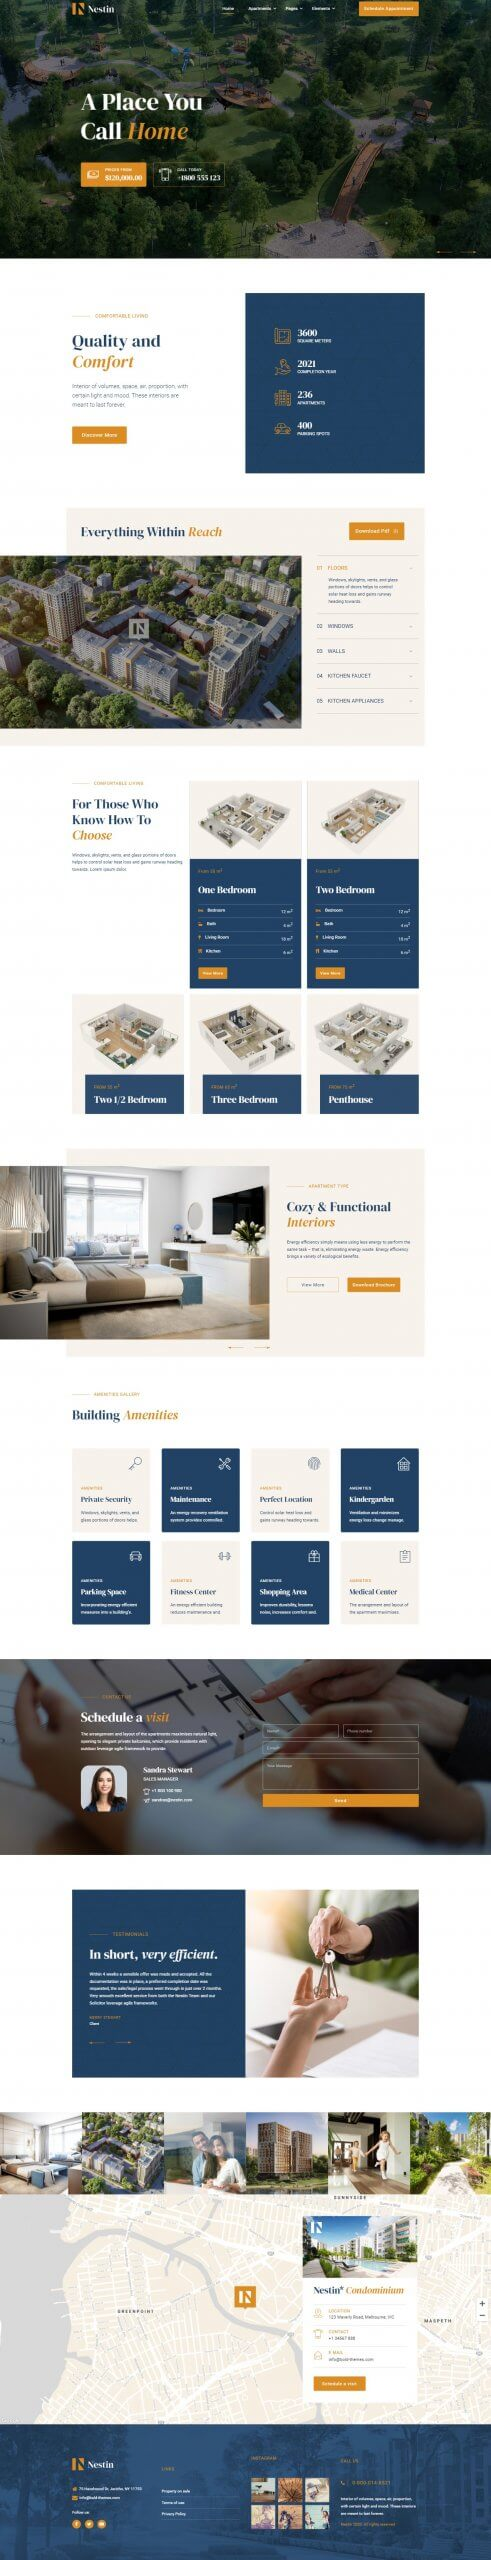 http://nestin.bold-themes.com/cozy/wp-content/uploads/sites/4/2020/03/Demo-03-scaled-1.jpg